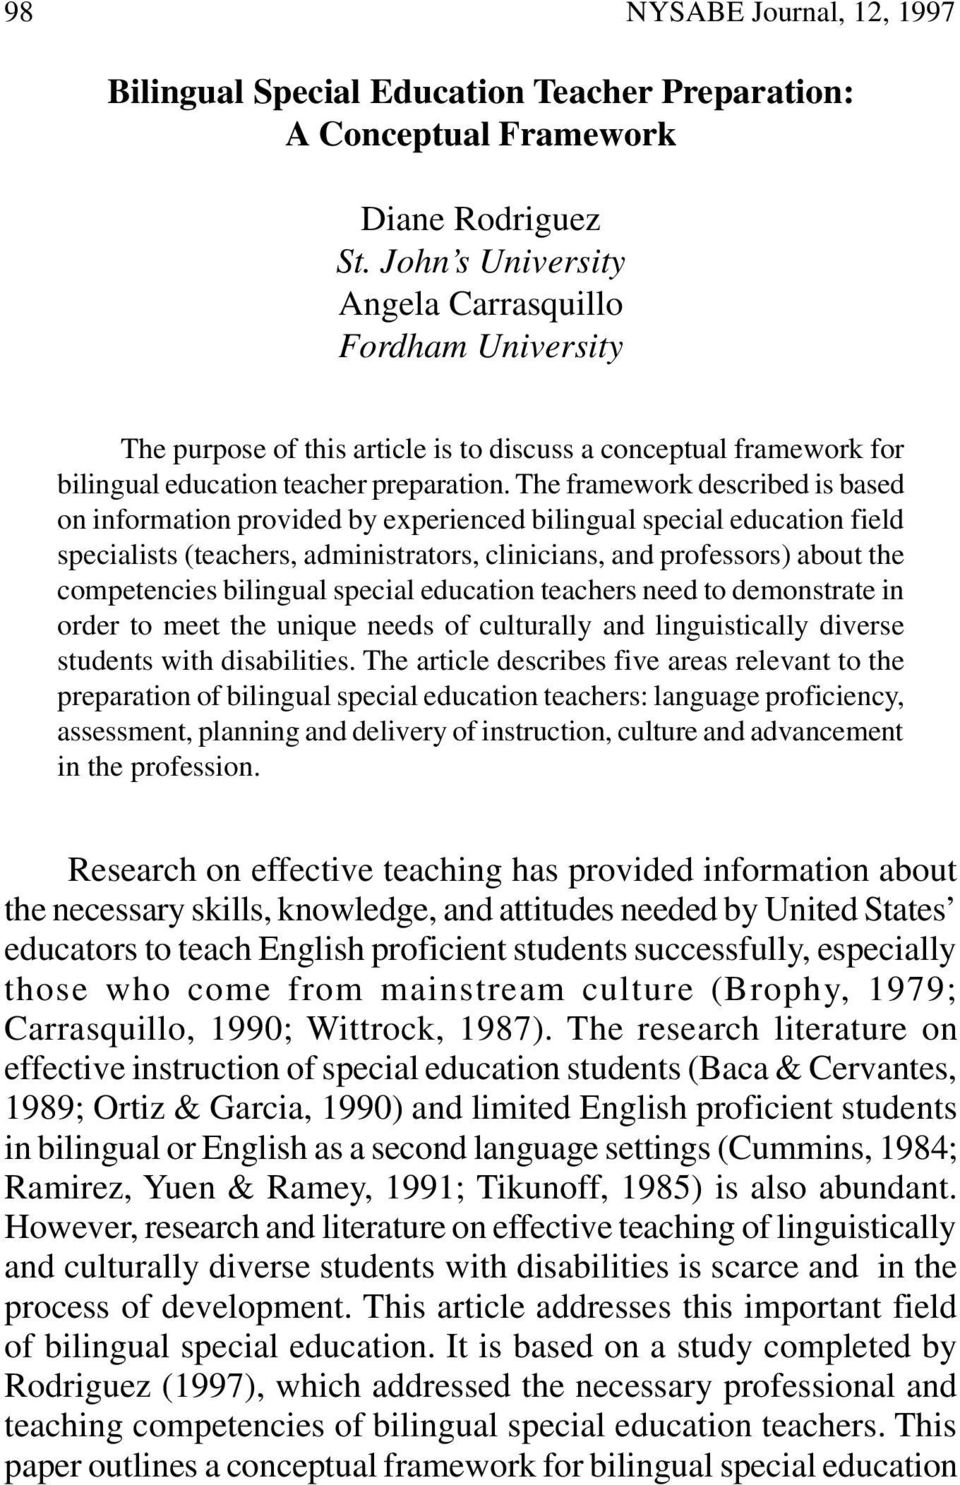 The framework described is based on information provided by experienced bilingual special education field specialists (teachers, administrators, clinicians, and professors) about the competencies